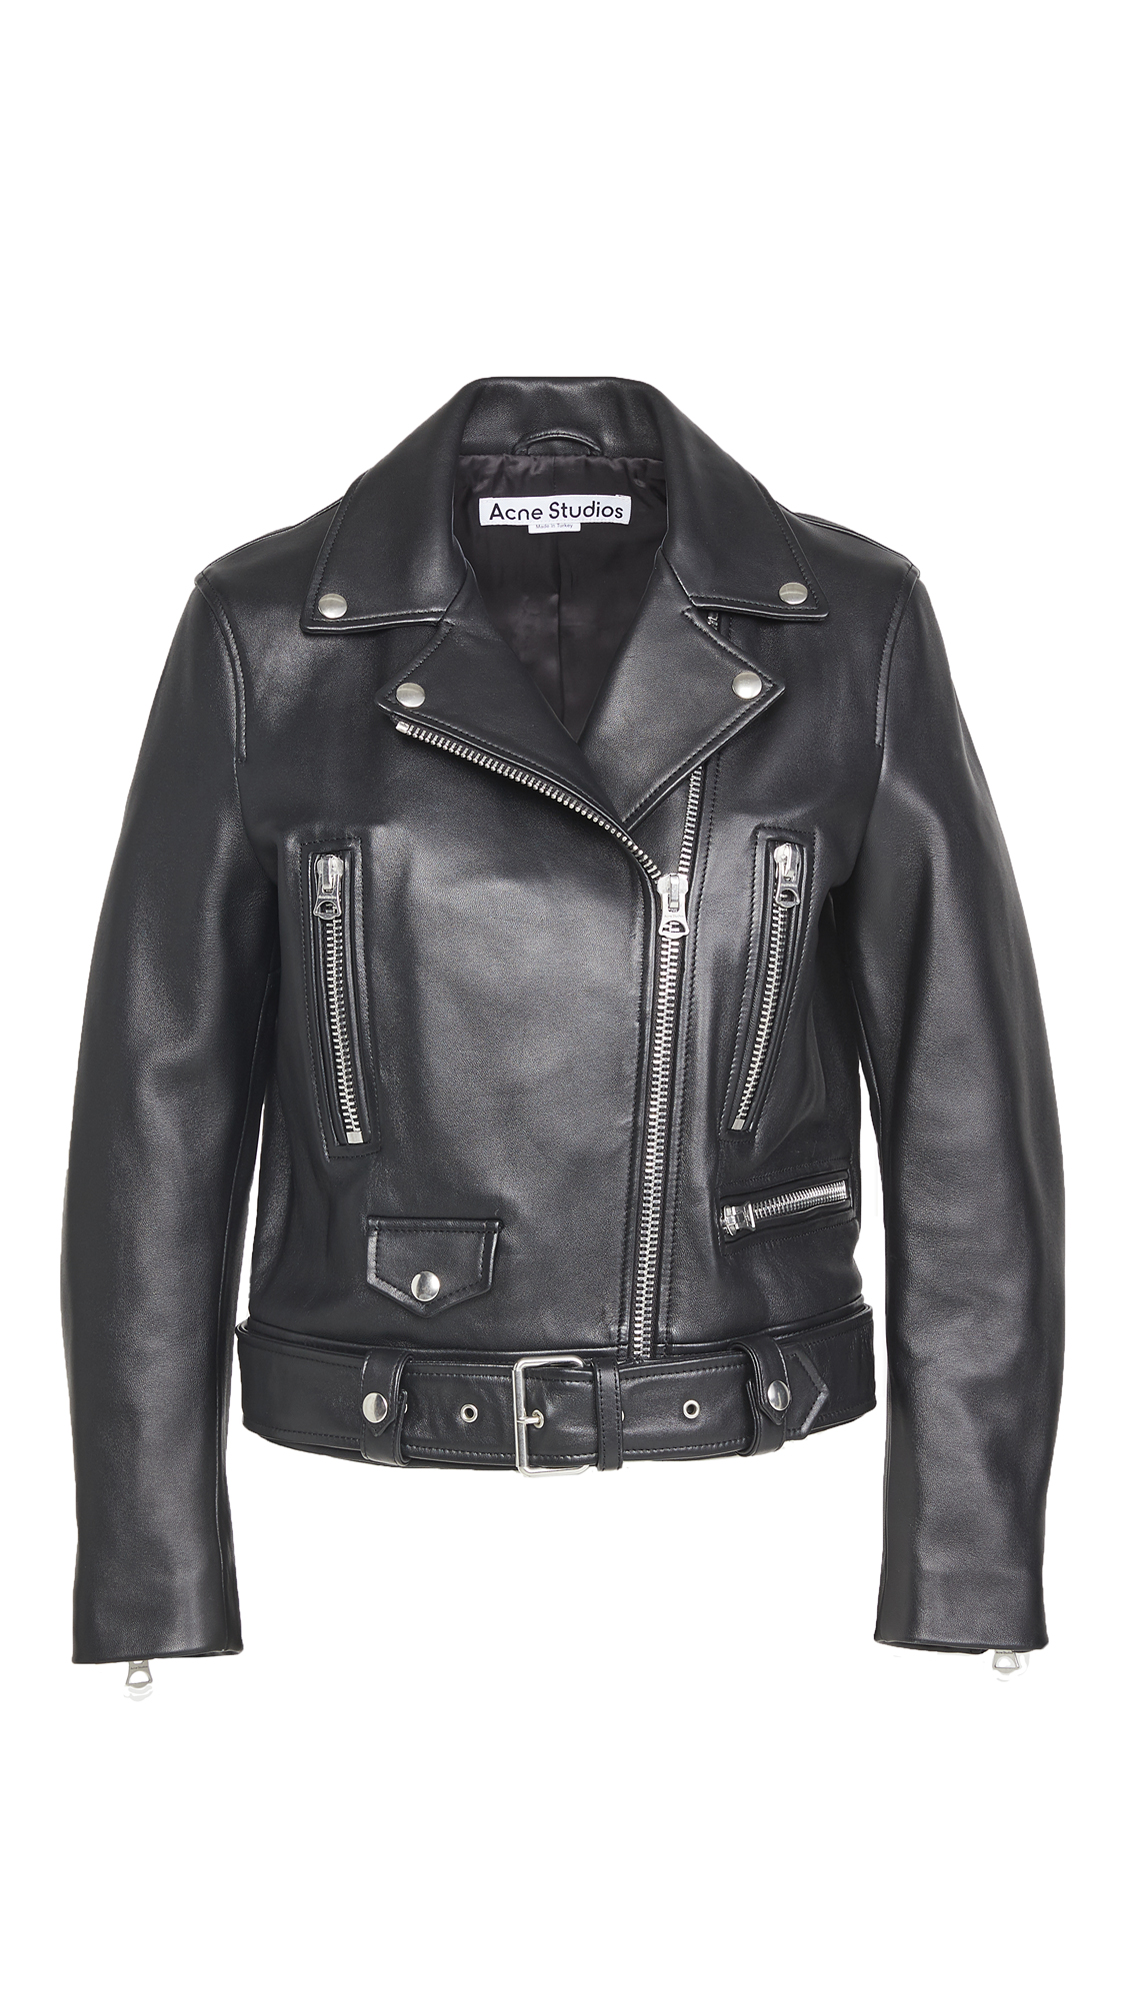 Acne Studios Mock Leather Outerwear